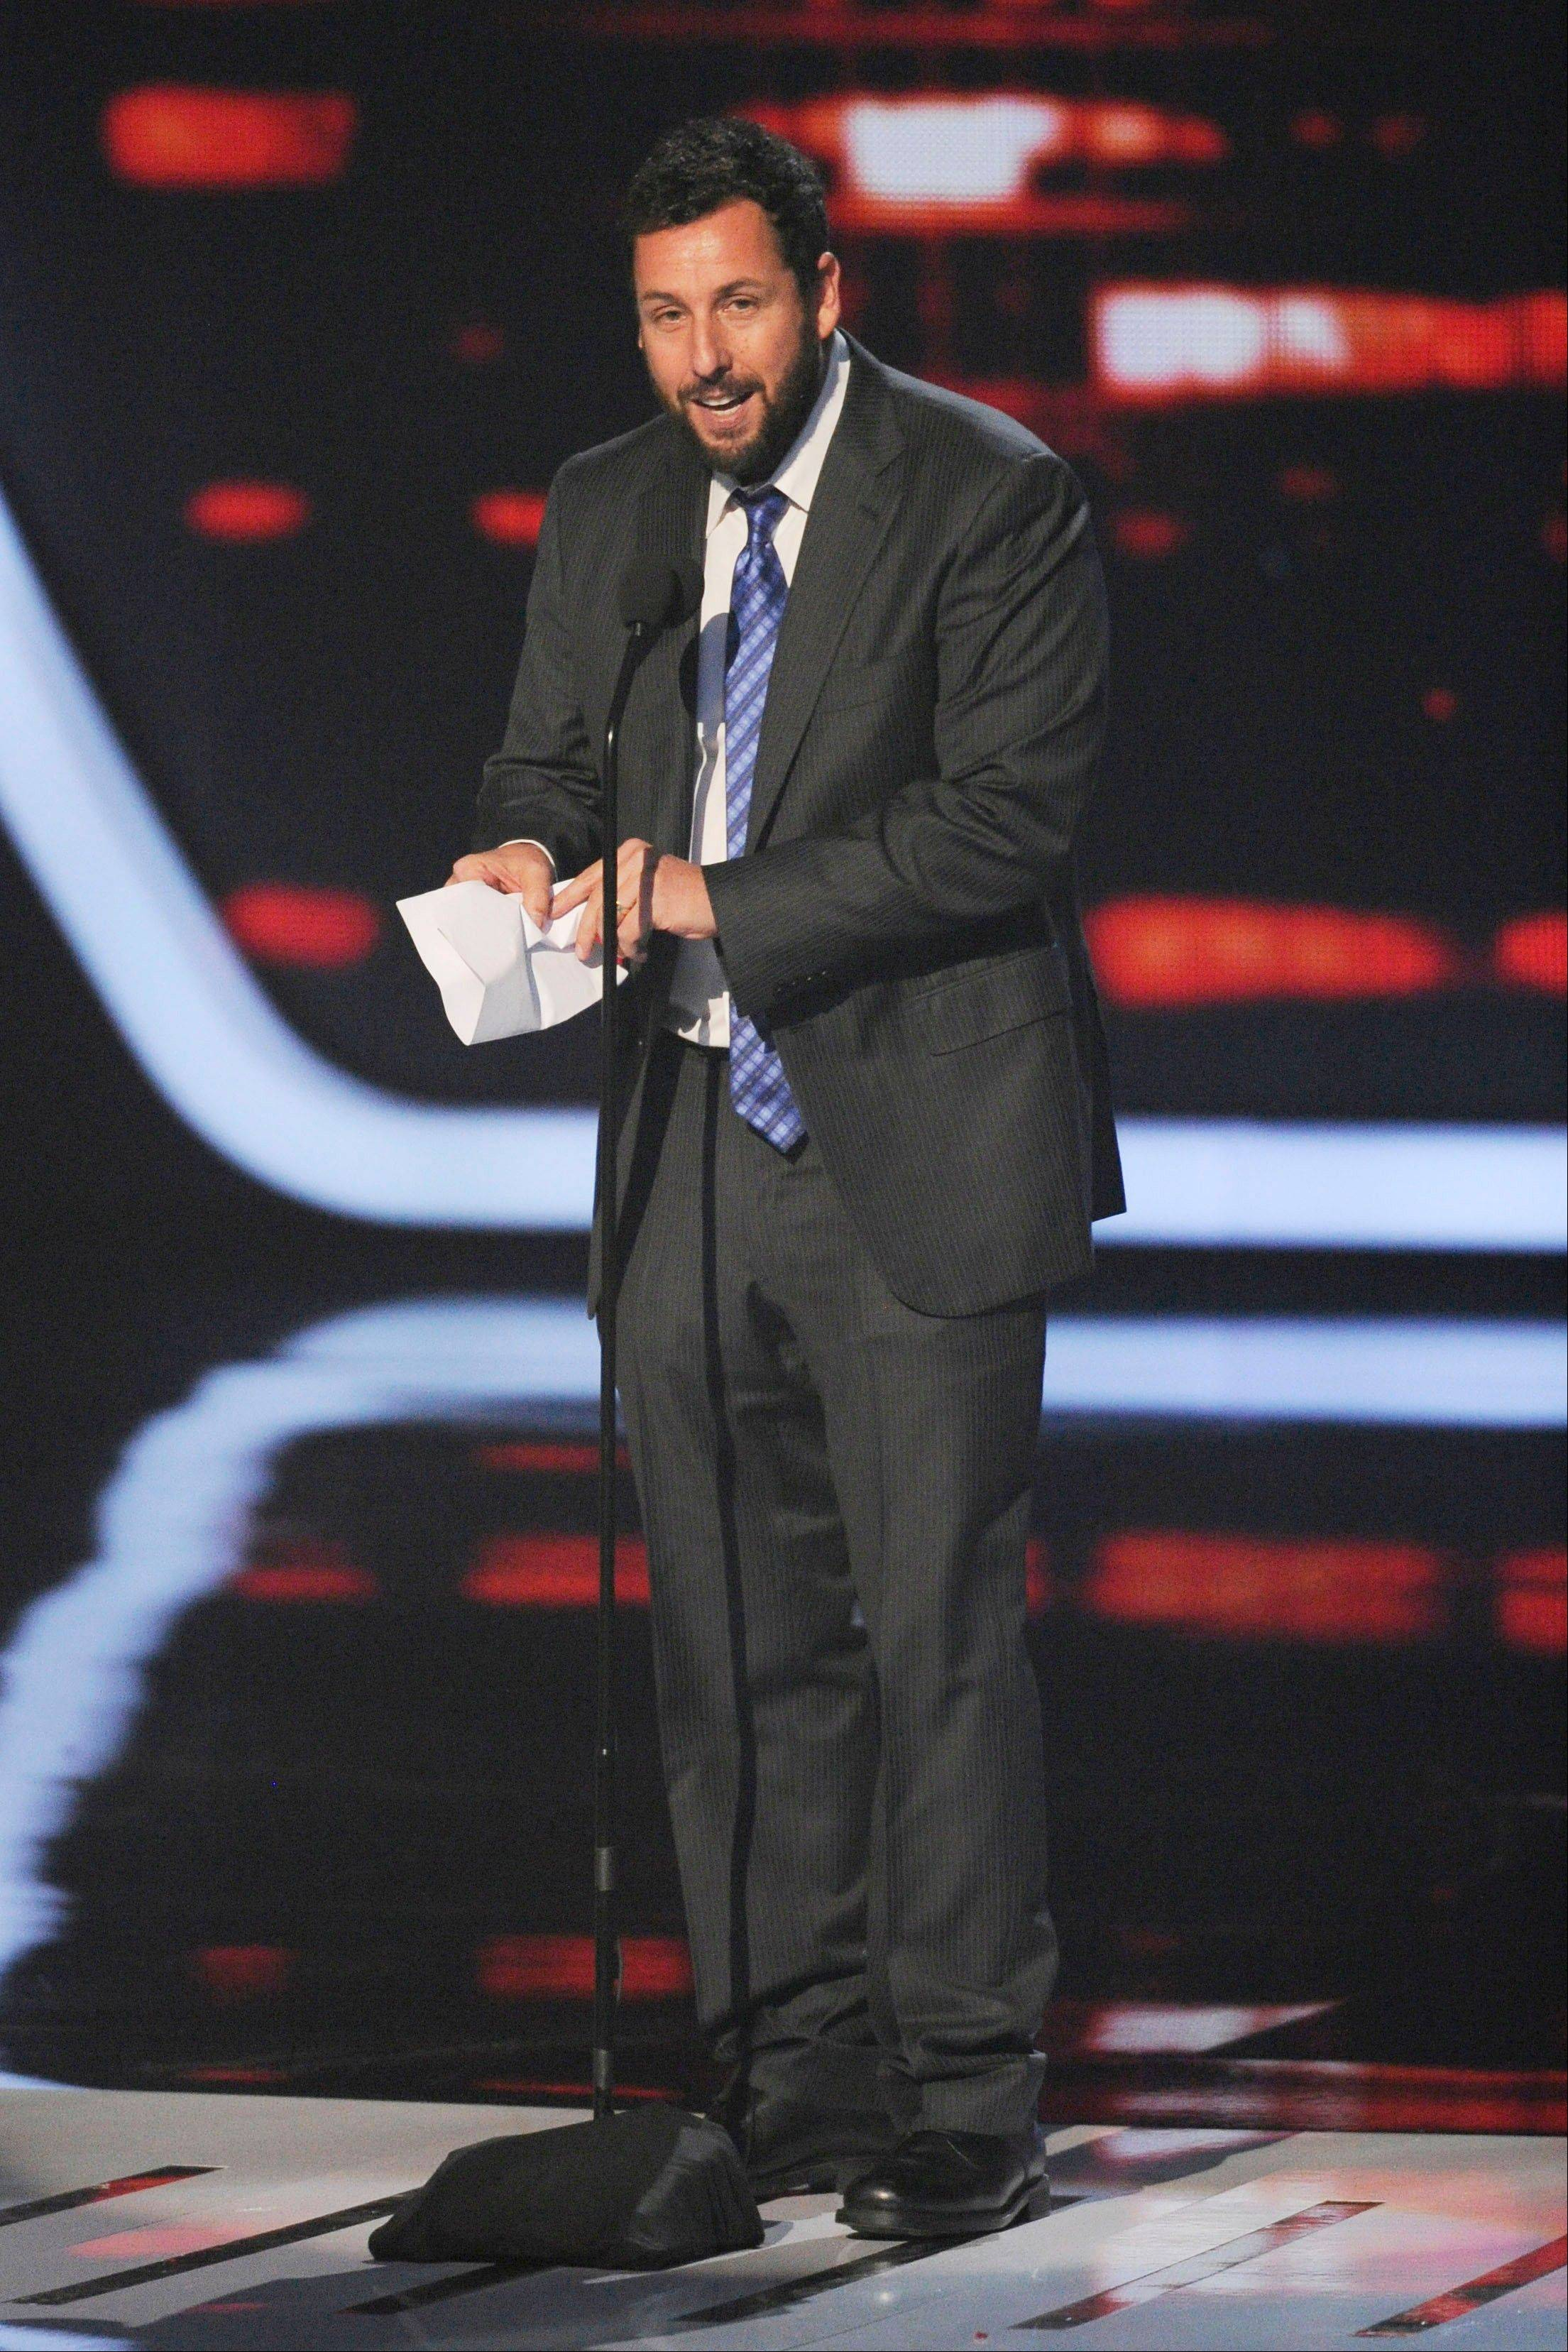 Adam Sandler accepts the award for favorite comedic movie actor at the 40th annual People's Choice Awards.